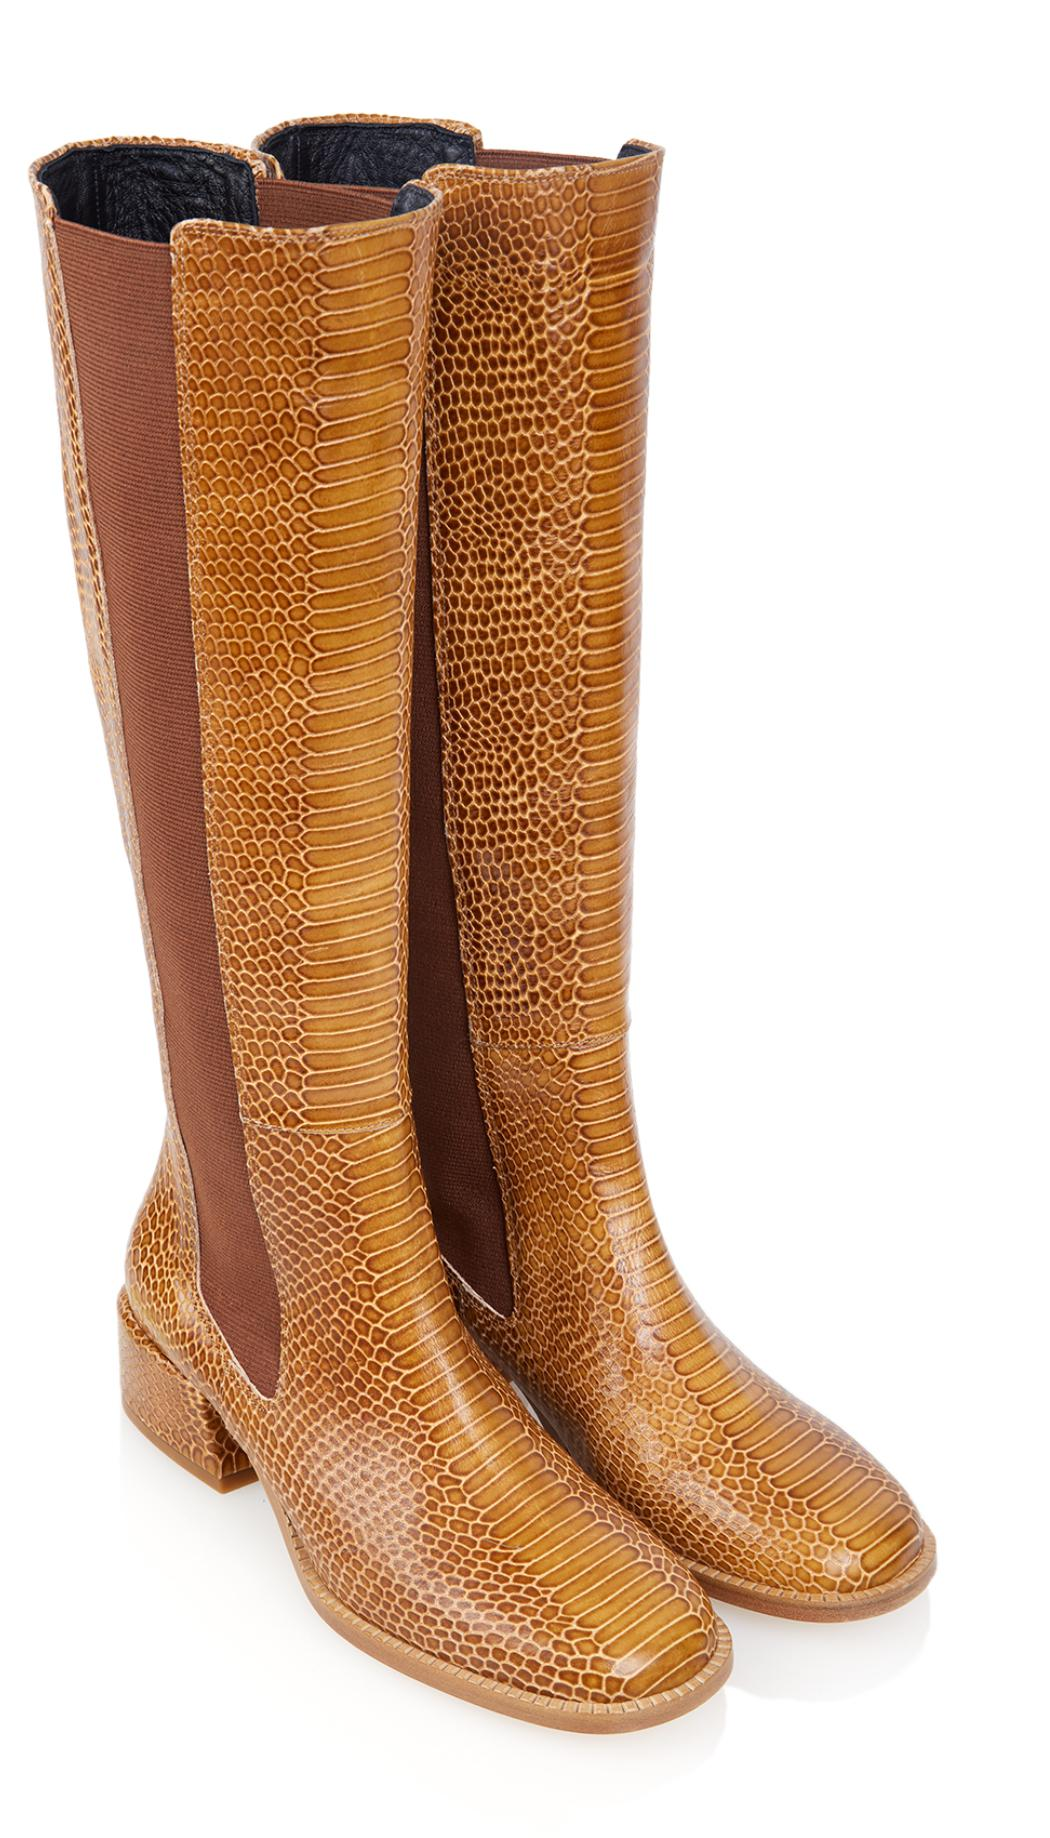 Tibi Leather Amelia Boots in Cognac (Brown)